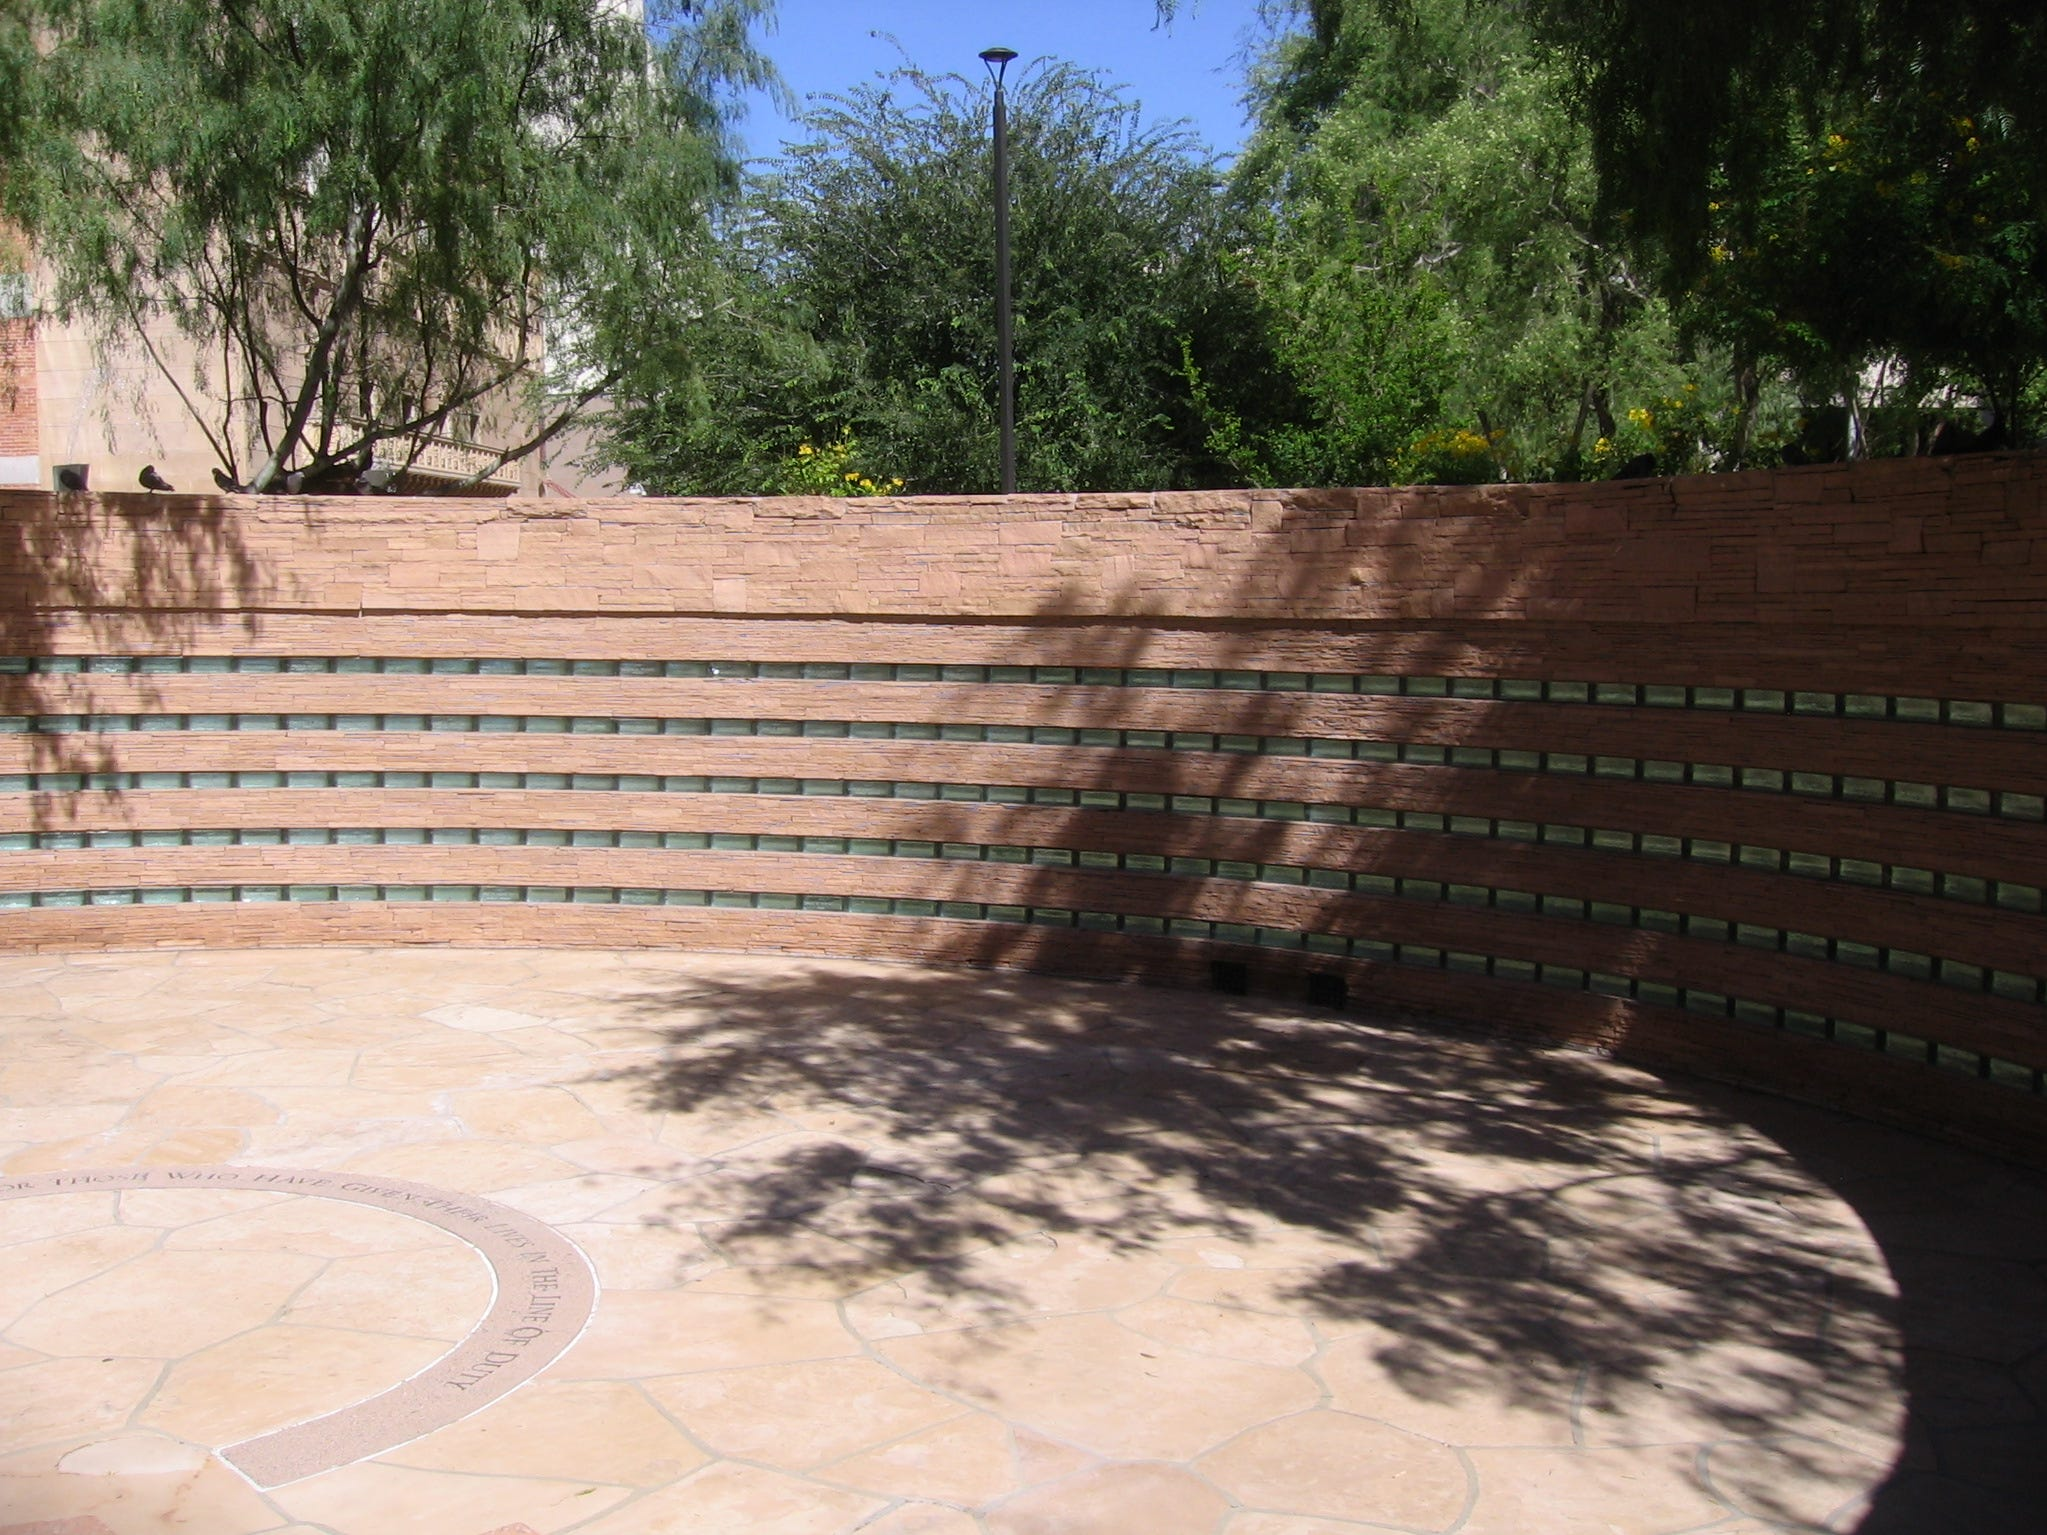 City of Phoenix Public Employee Memorial